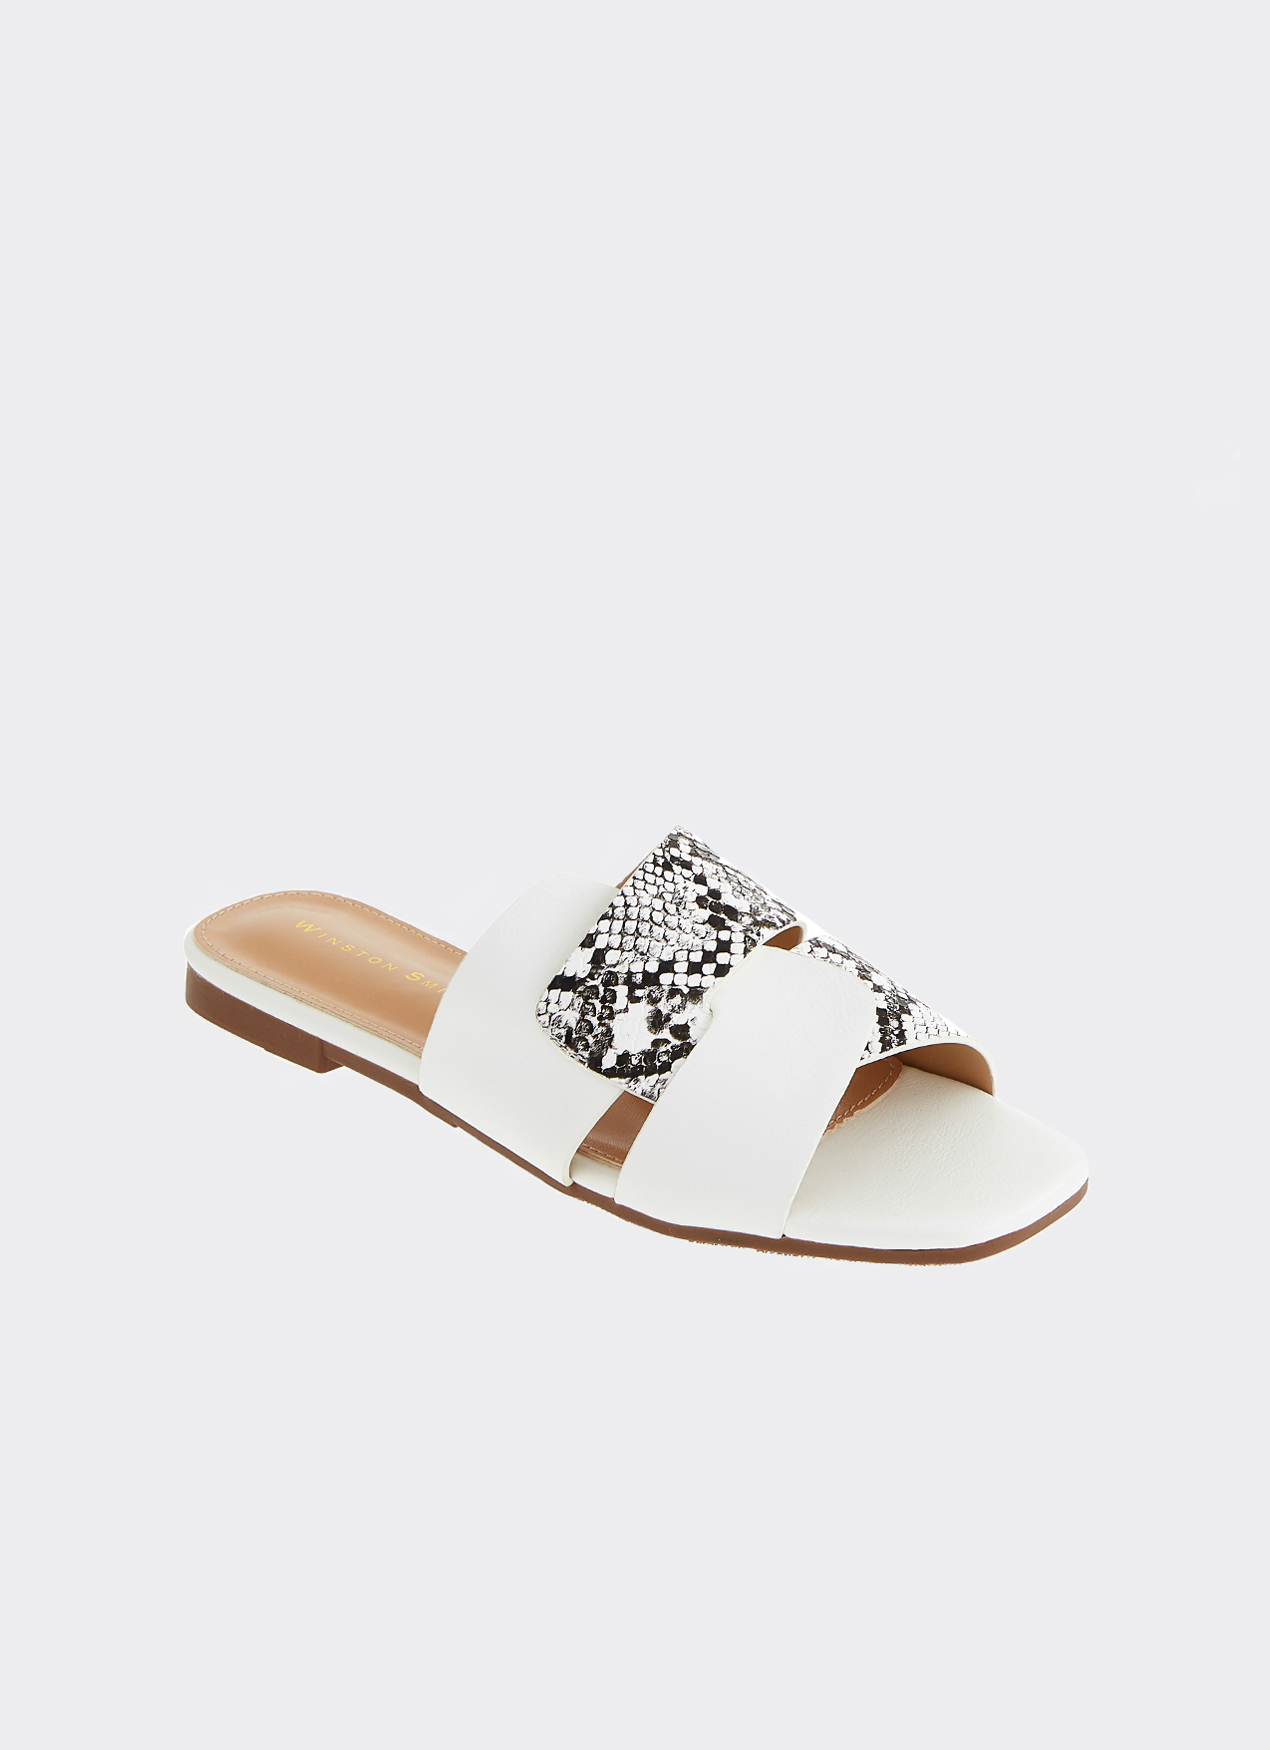 Winston Smith May Sandals White